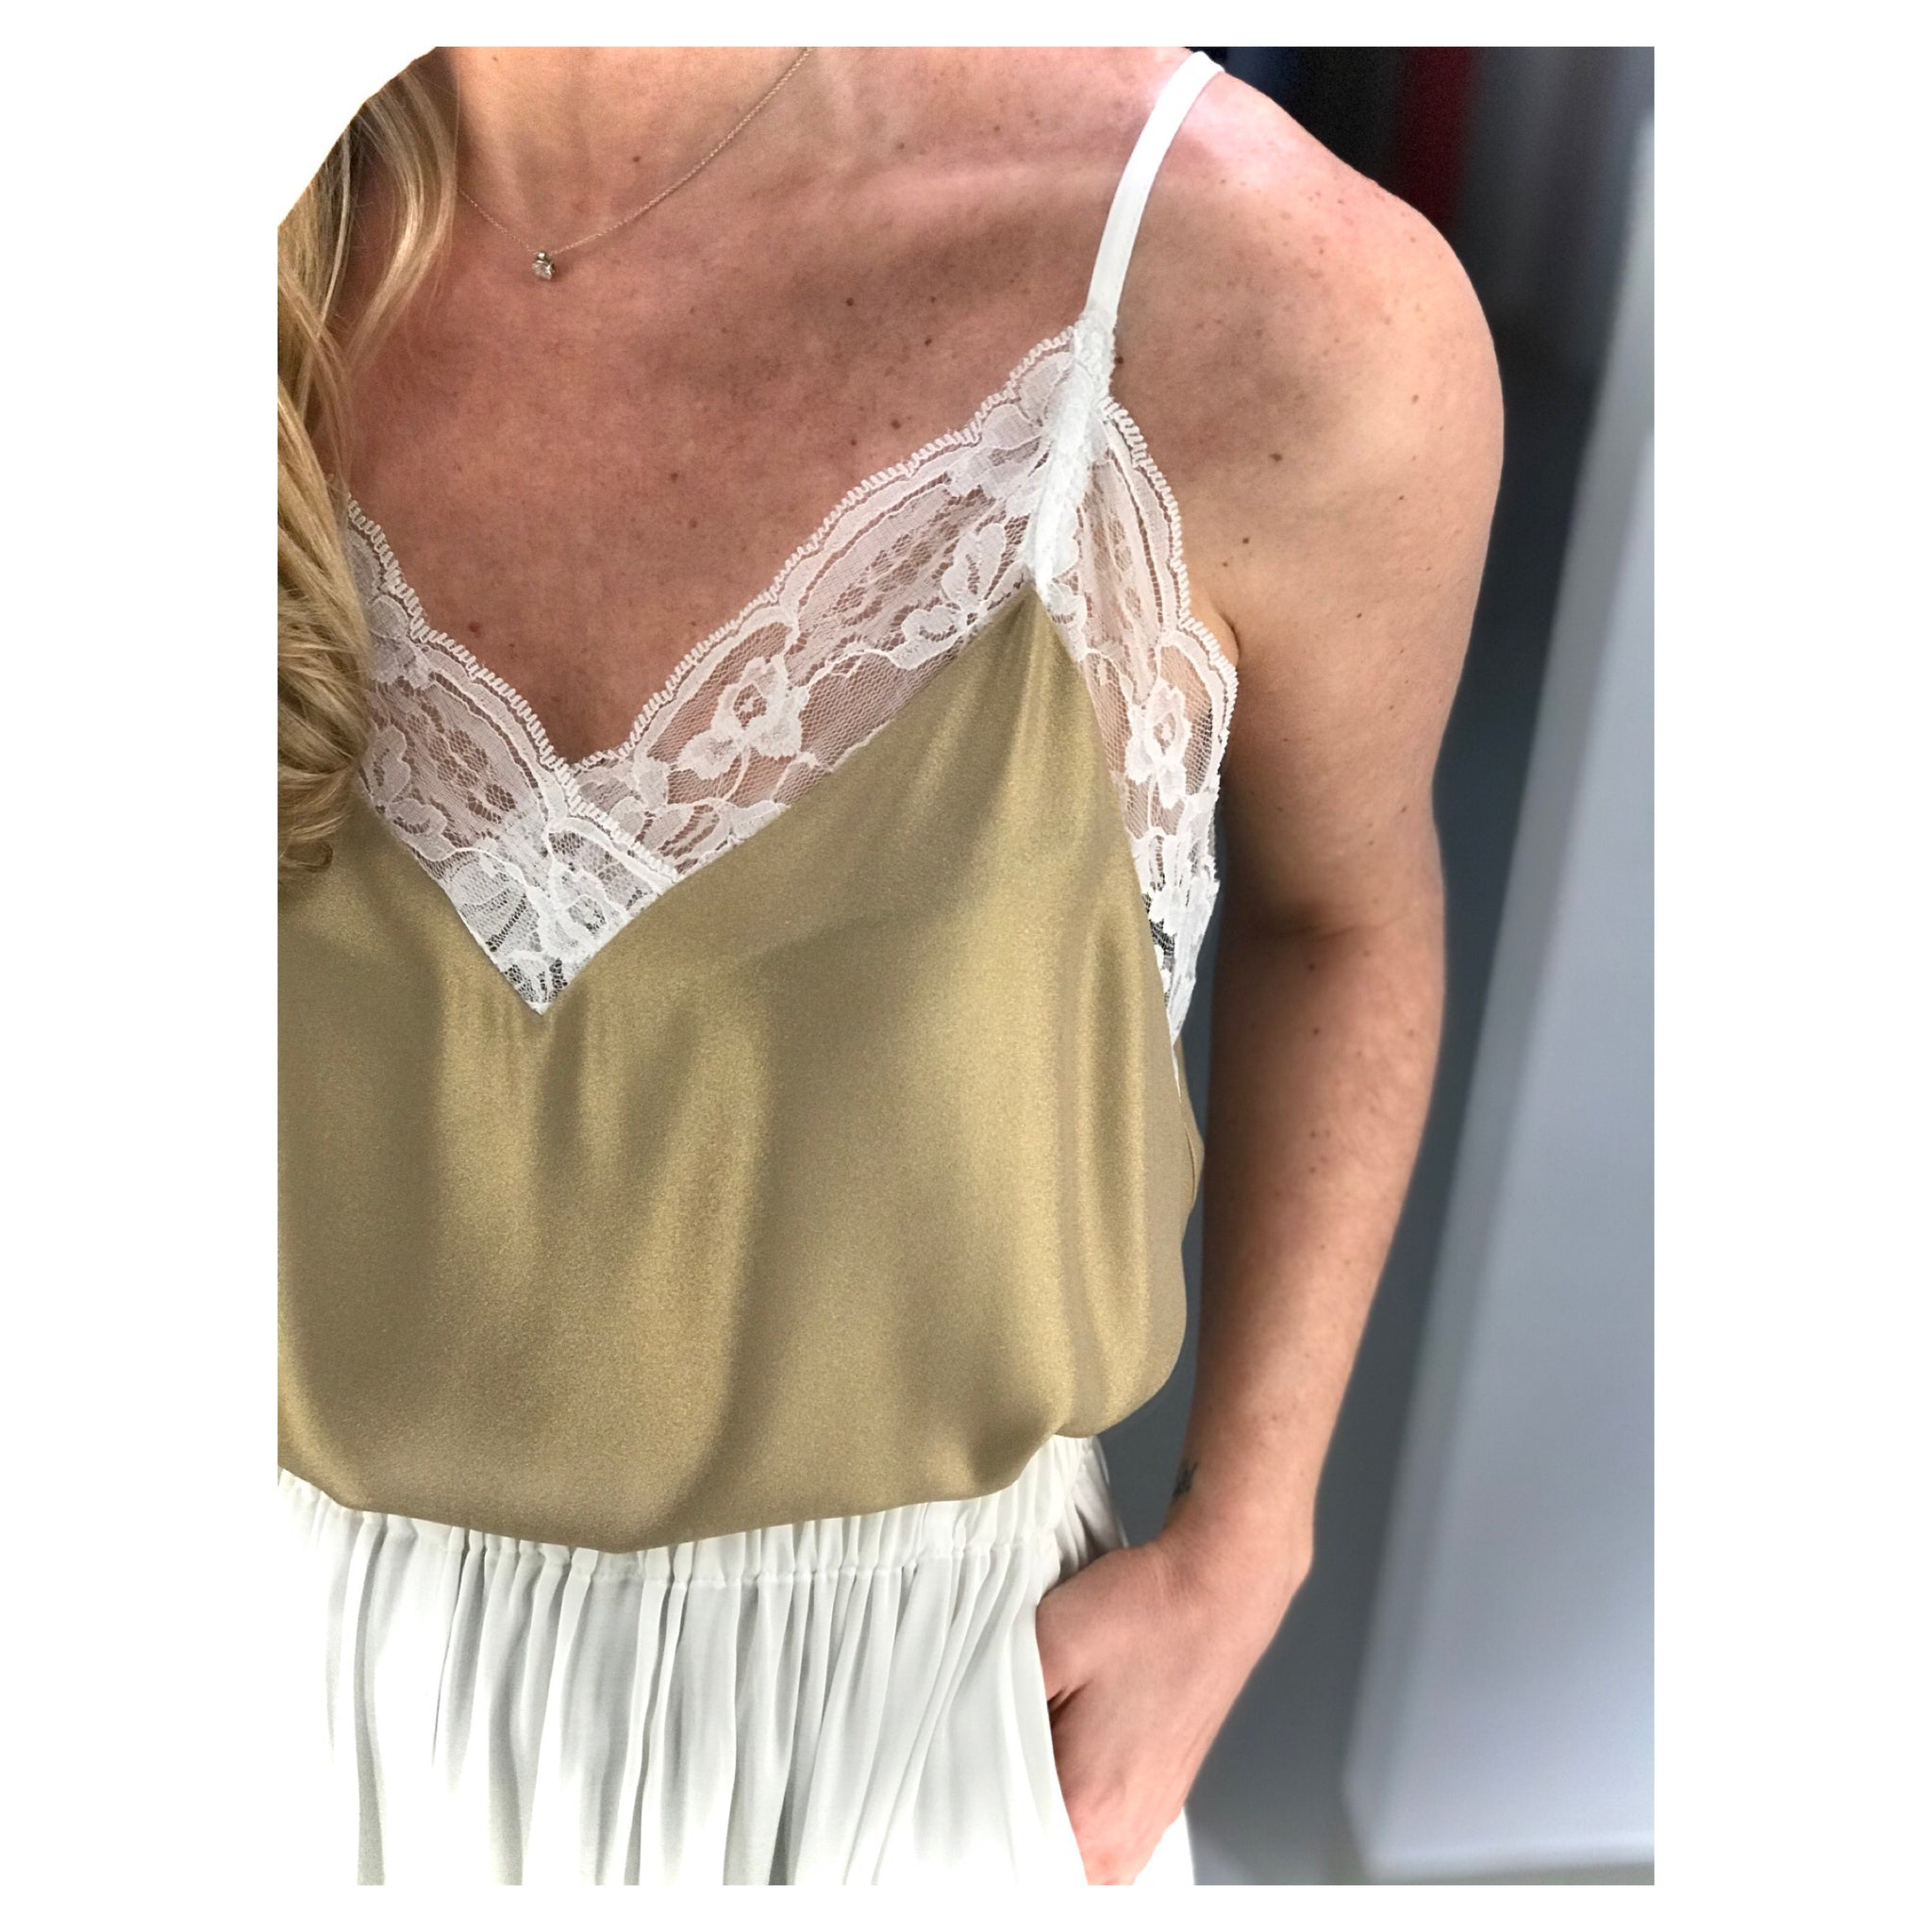 LACE TRIMMED GOLD CAMISOLE.